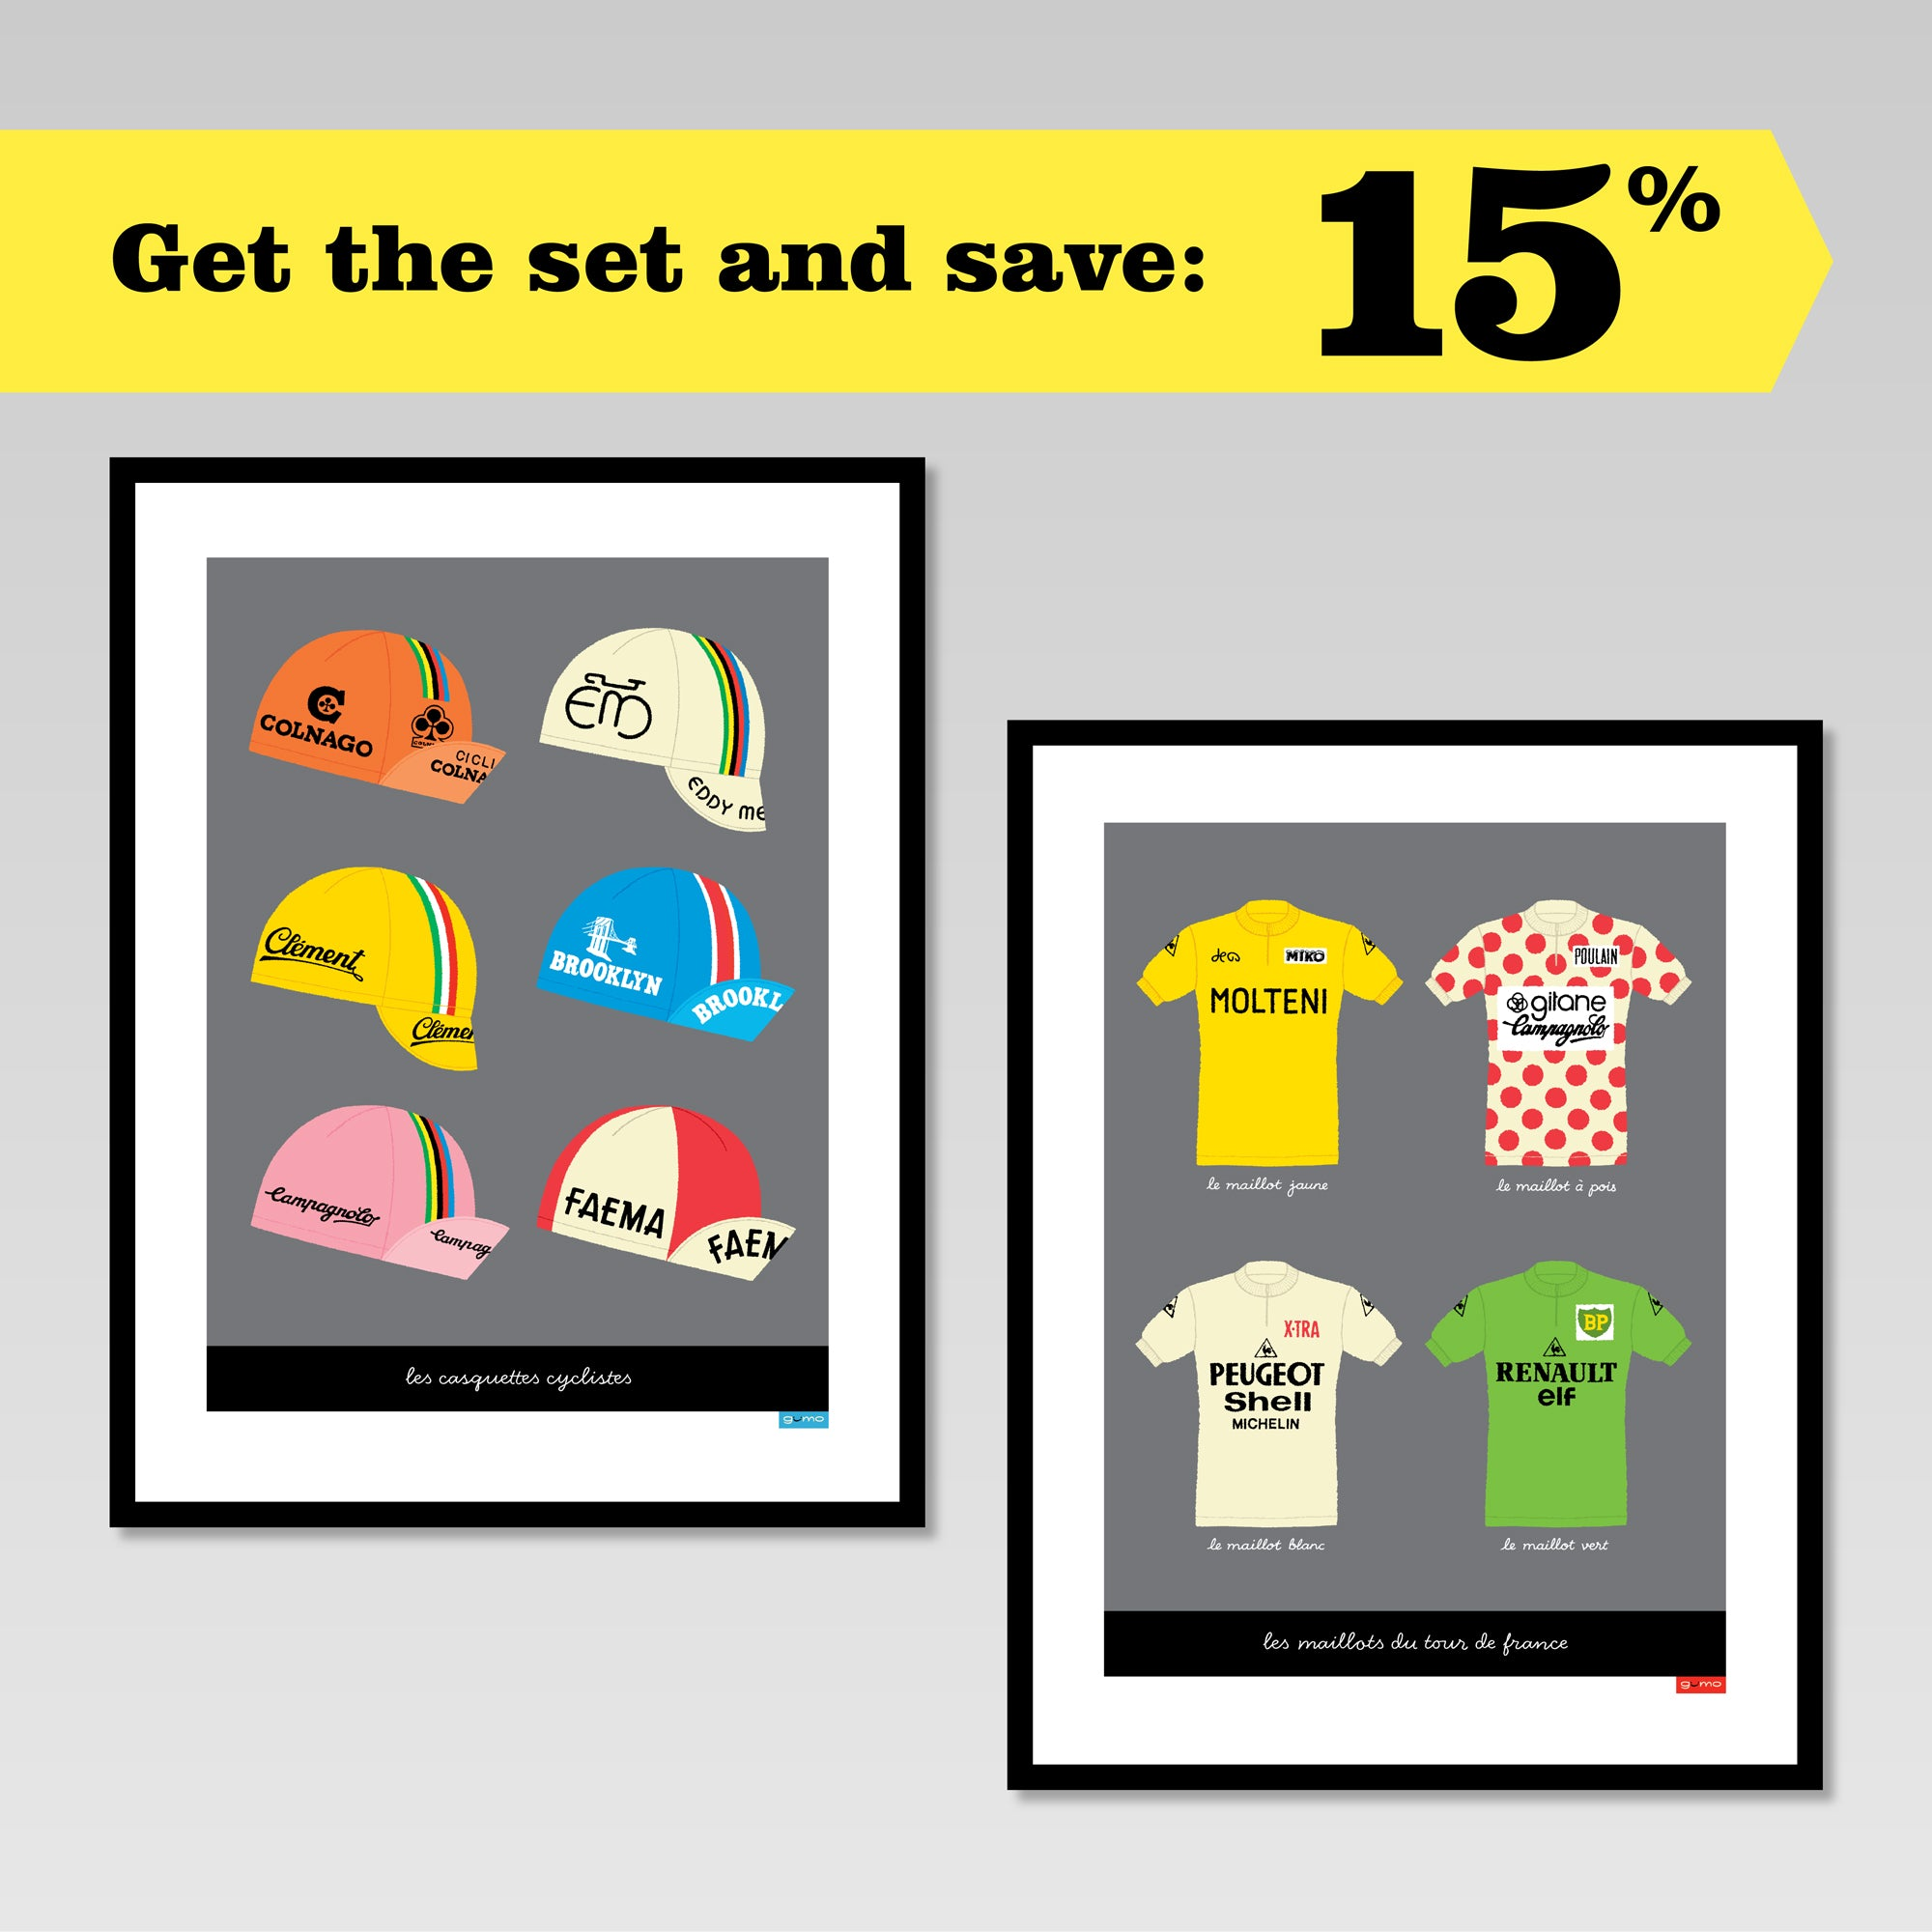 Cycling Caps and Tour Jerseys set of two posters in black frames, showing 15% discount offer for buying the set.